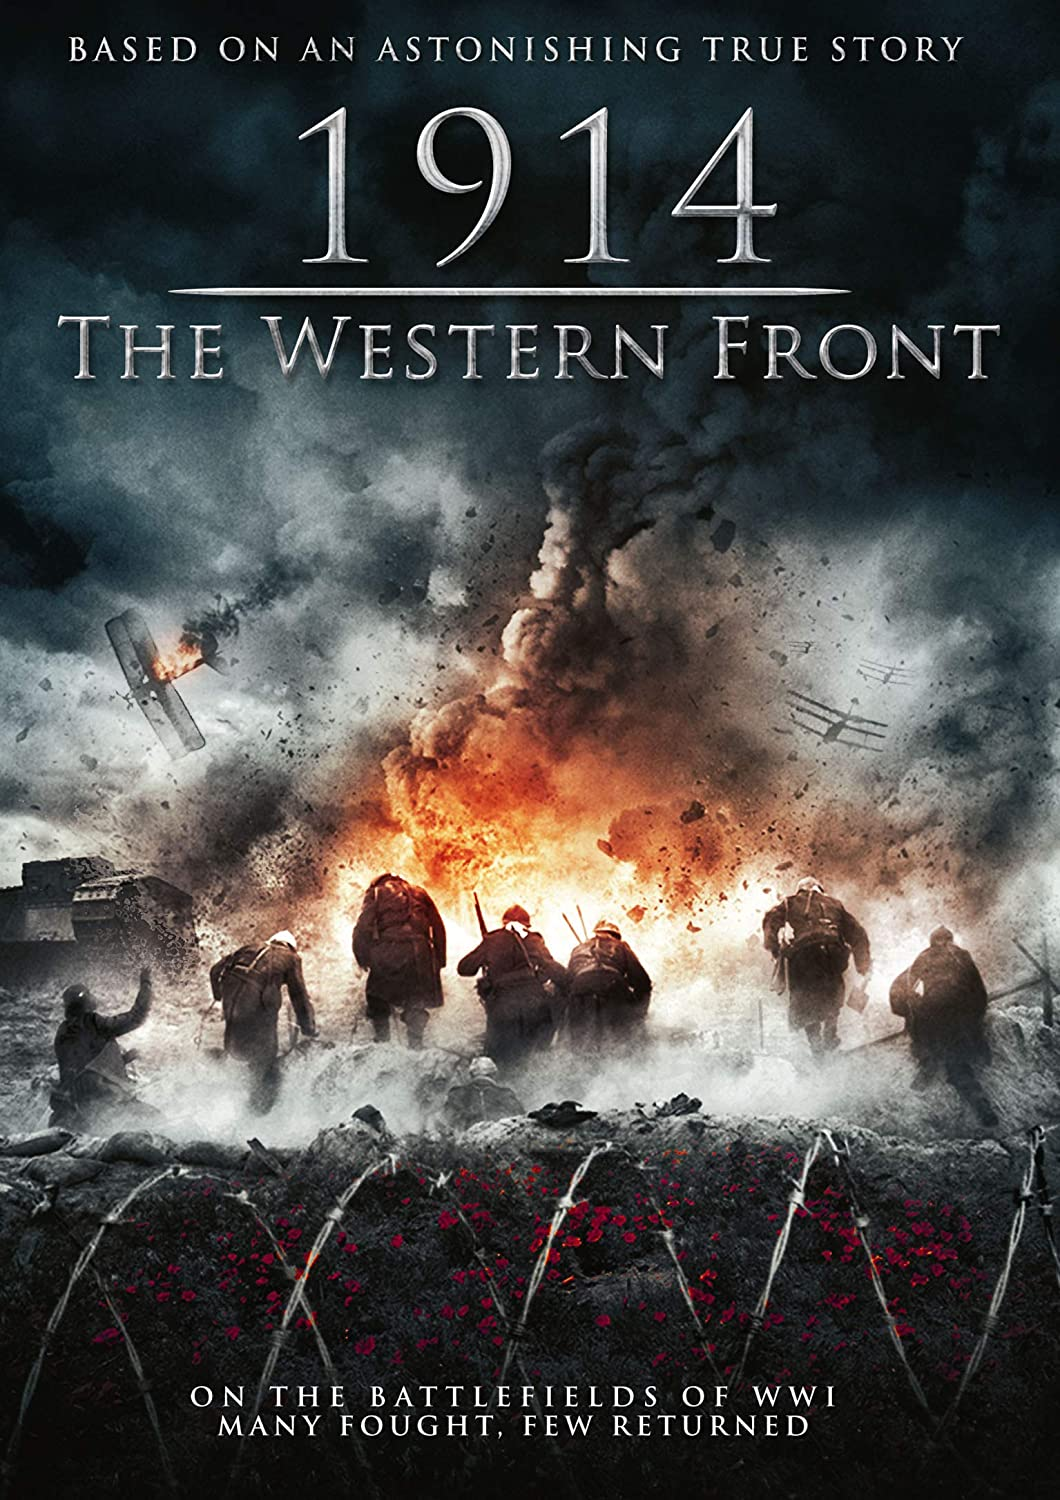 1914 The Western Front Movie Poster about Indo Arthur Knaap